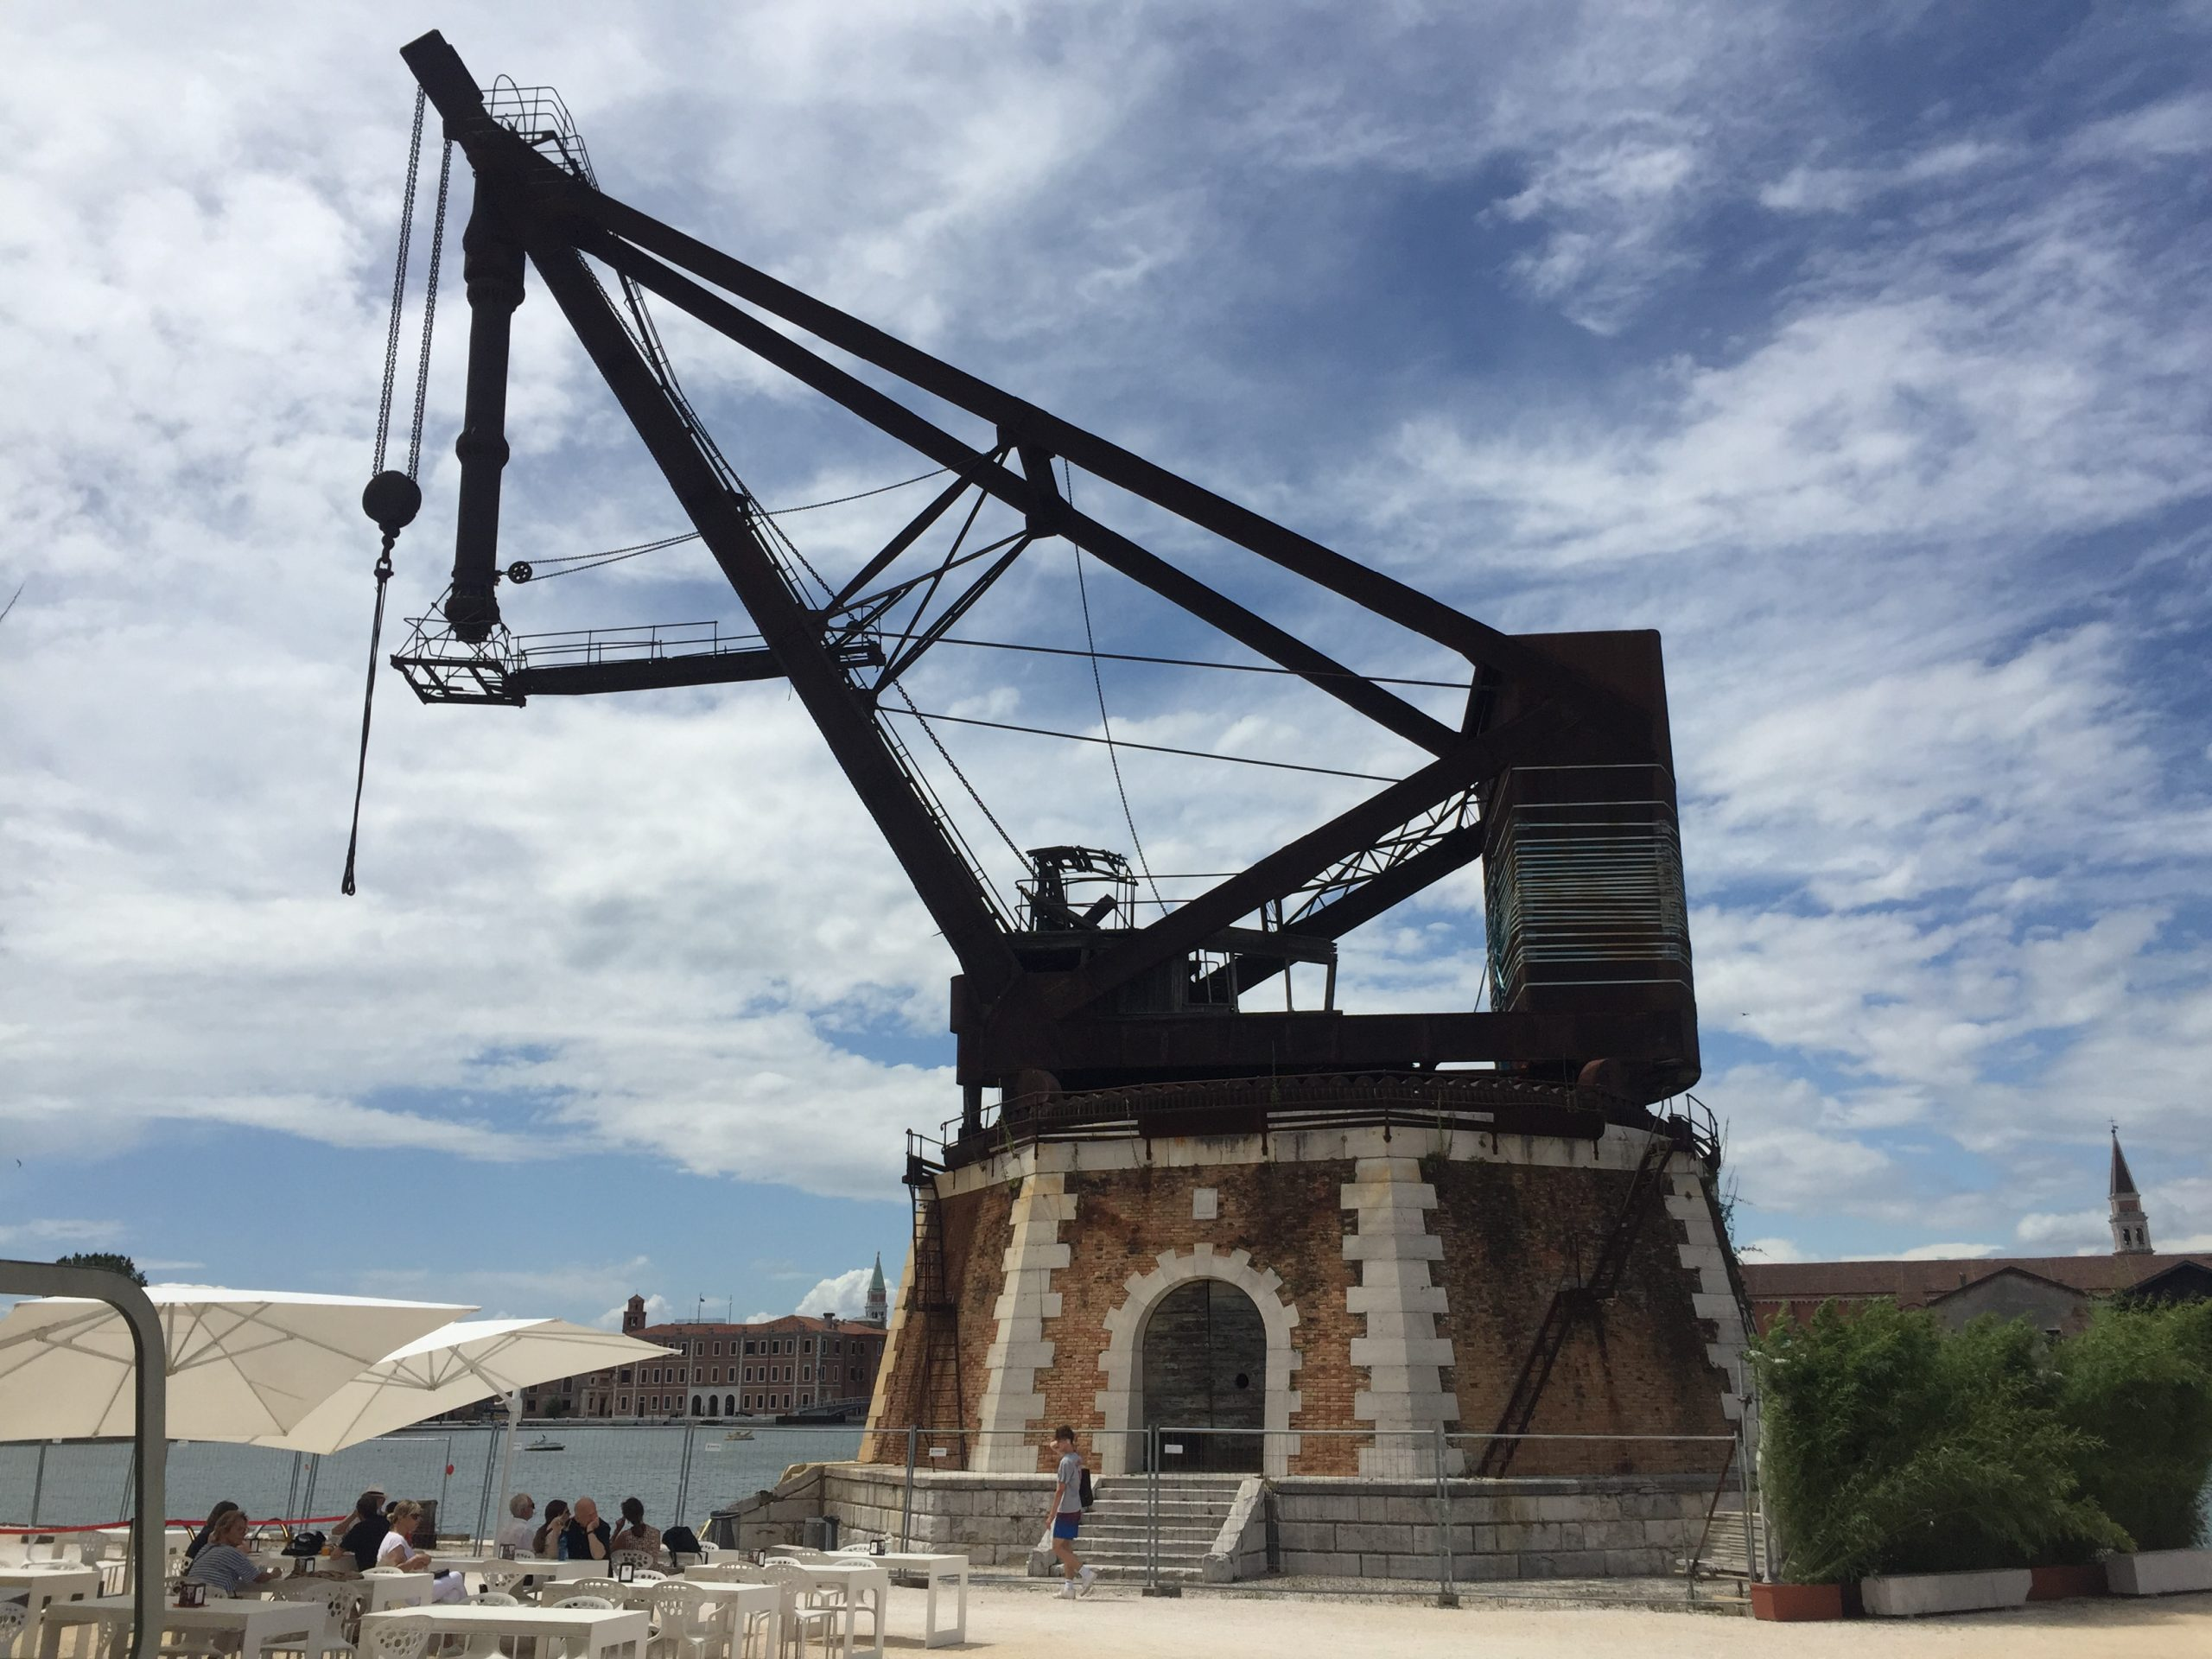 the crane by Armstrong-Mitchell in the Venice shipyard